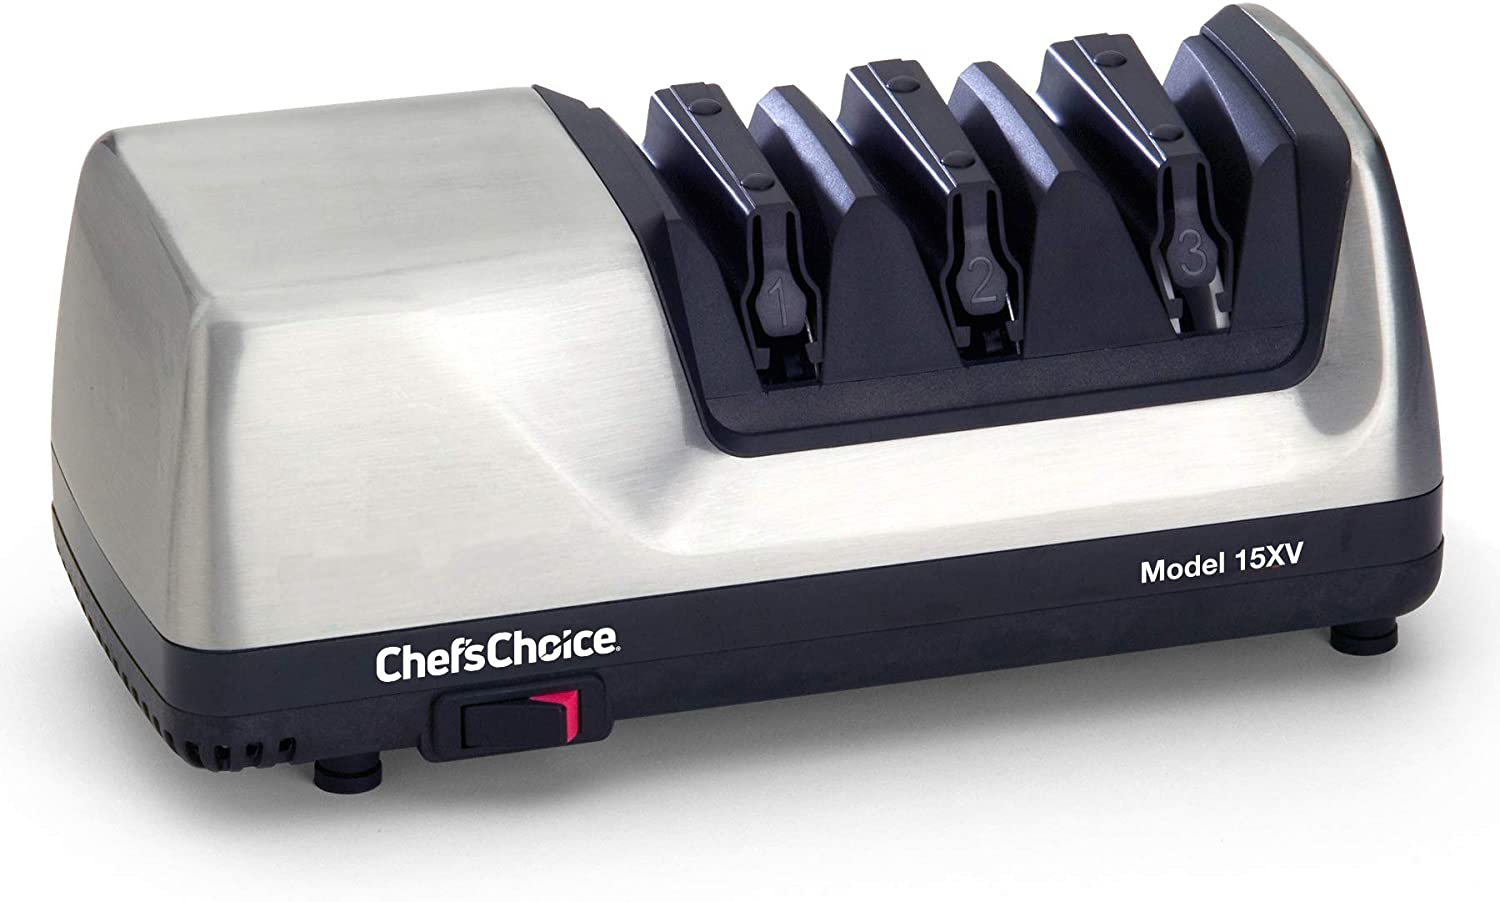 Chef'sChoice 15 Trizor XV EdgeSelect Professional Electric Knife Sharpener for Straight and Serrated Knives Diamond Abrasives Patented Sharpening System Made in USA, 3-Stage, Brushed Metal